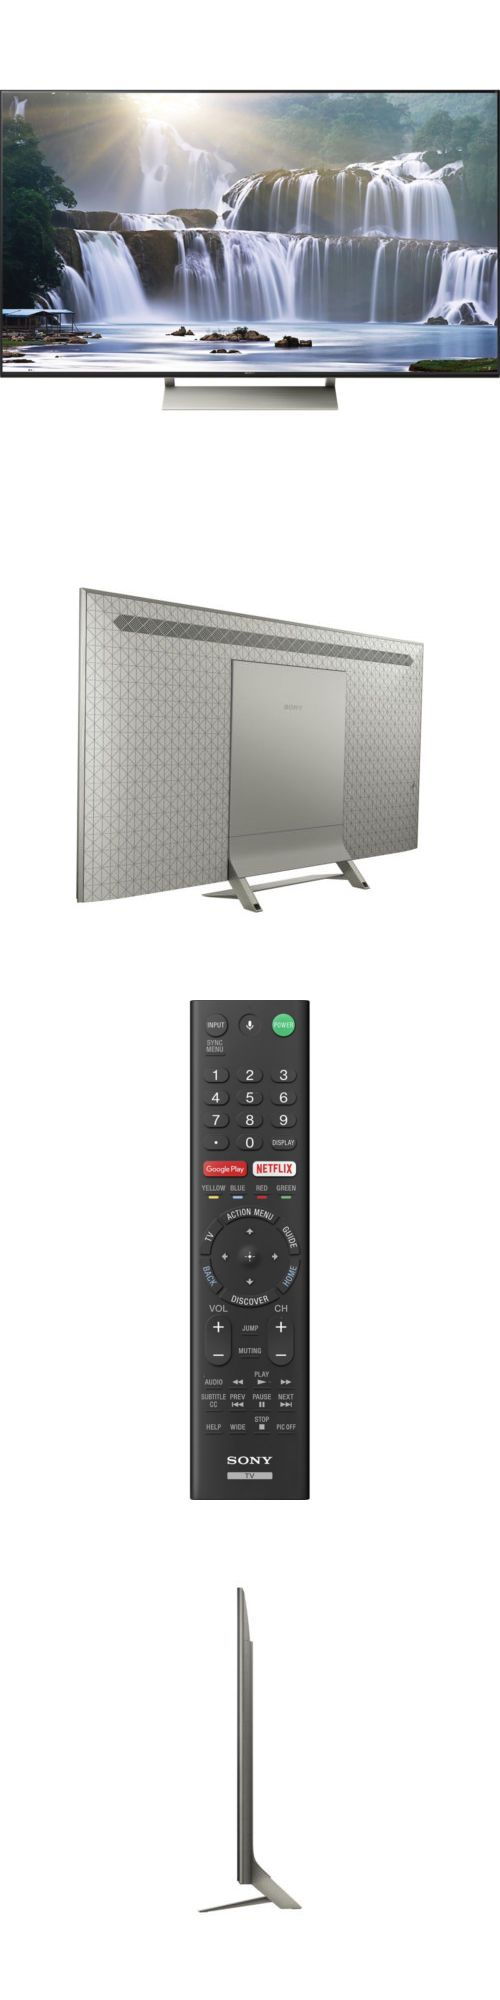 Televisions: Sony 65 Inch 4K Uhd Motionflow Xr 960 Hdr Smart Tv 2017 Model | Xbr65x930e -> BUY IT NOW ONLY: $2798 on eBay!